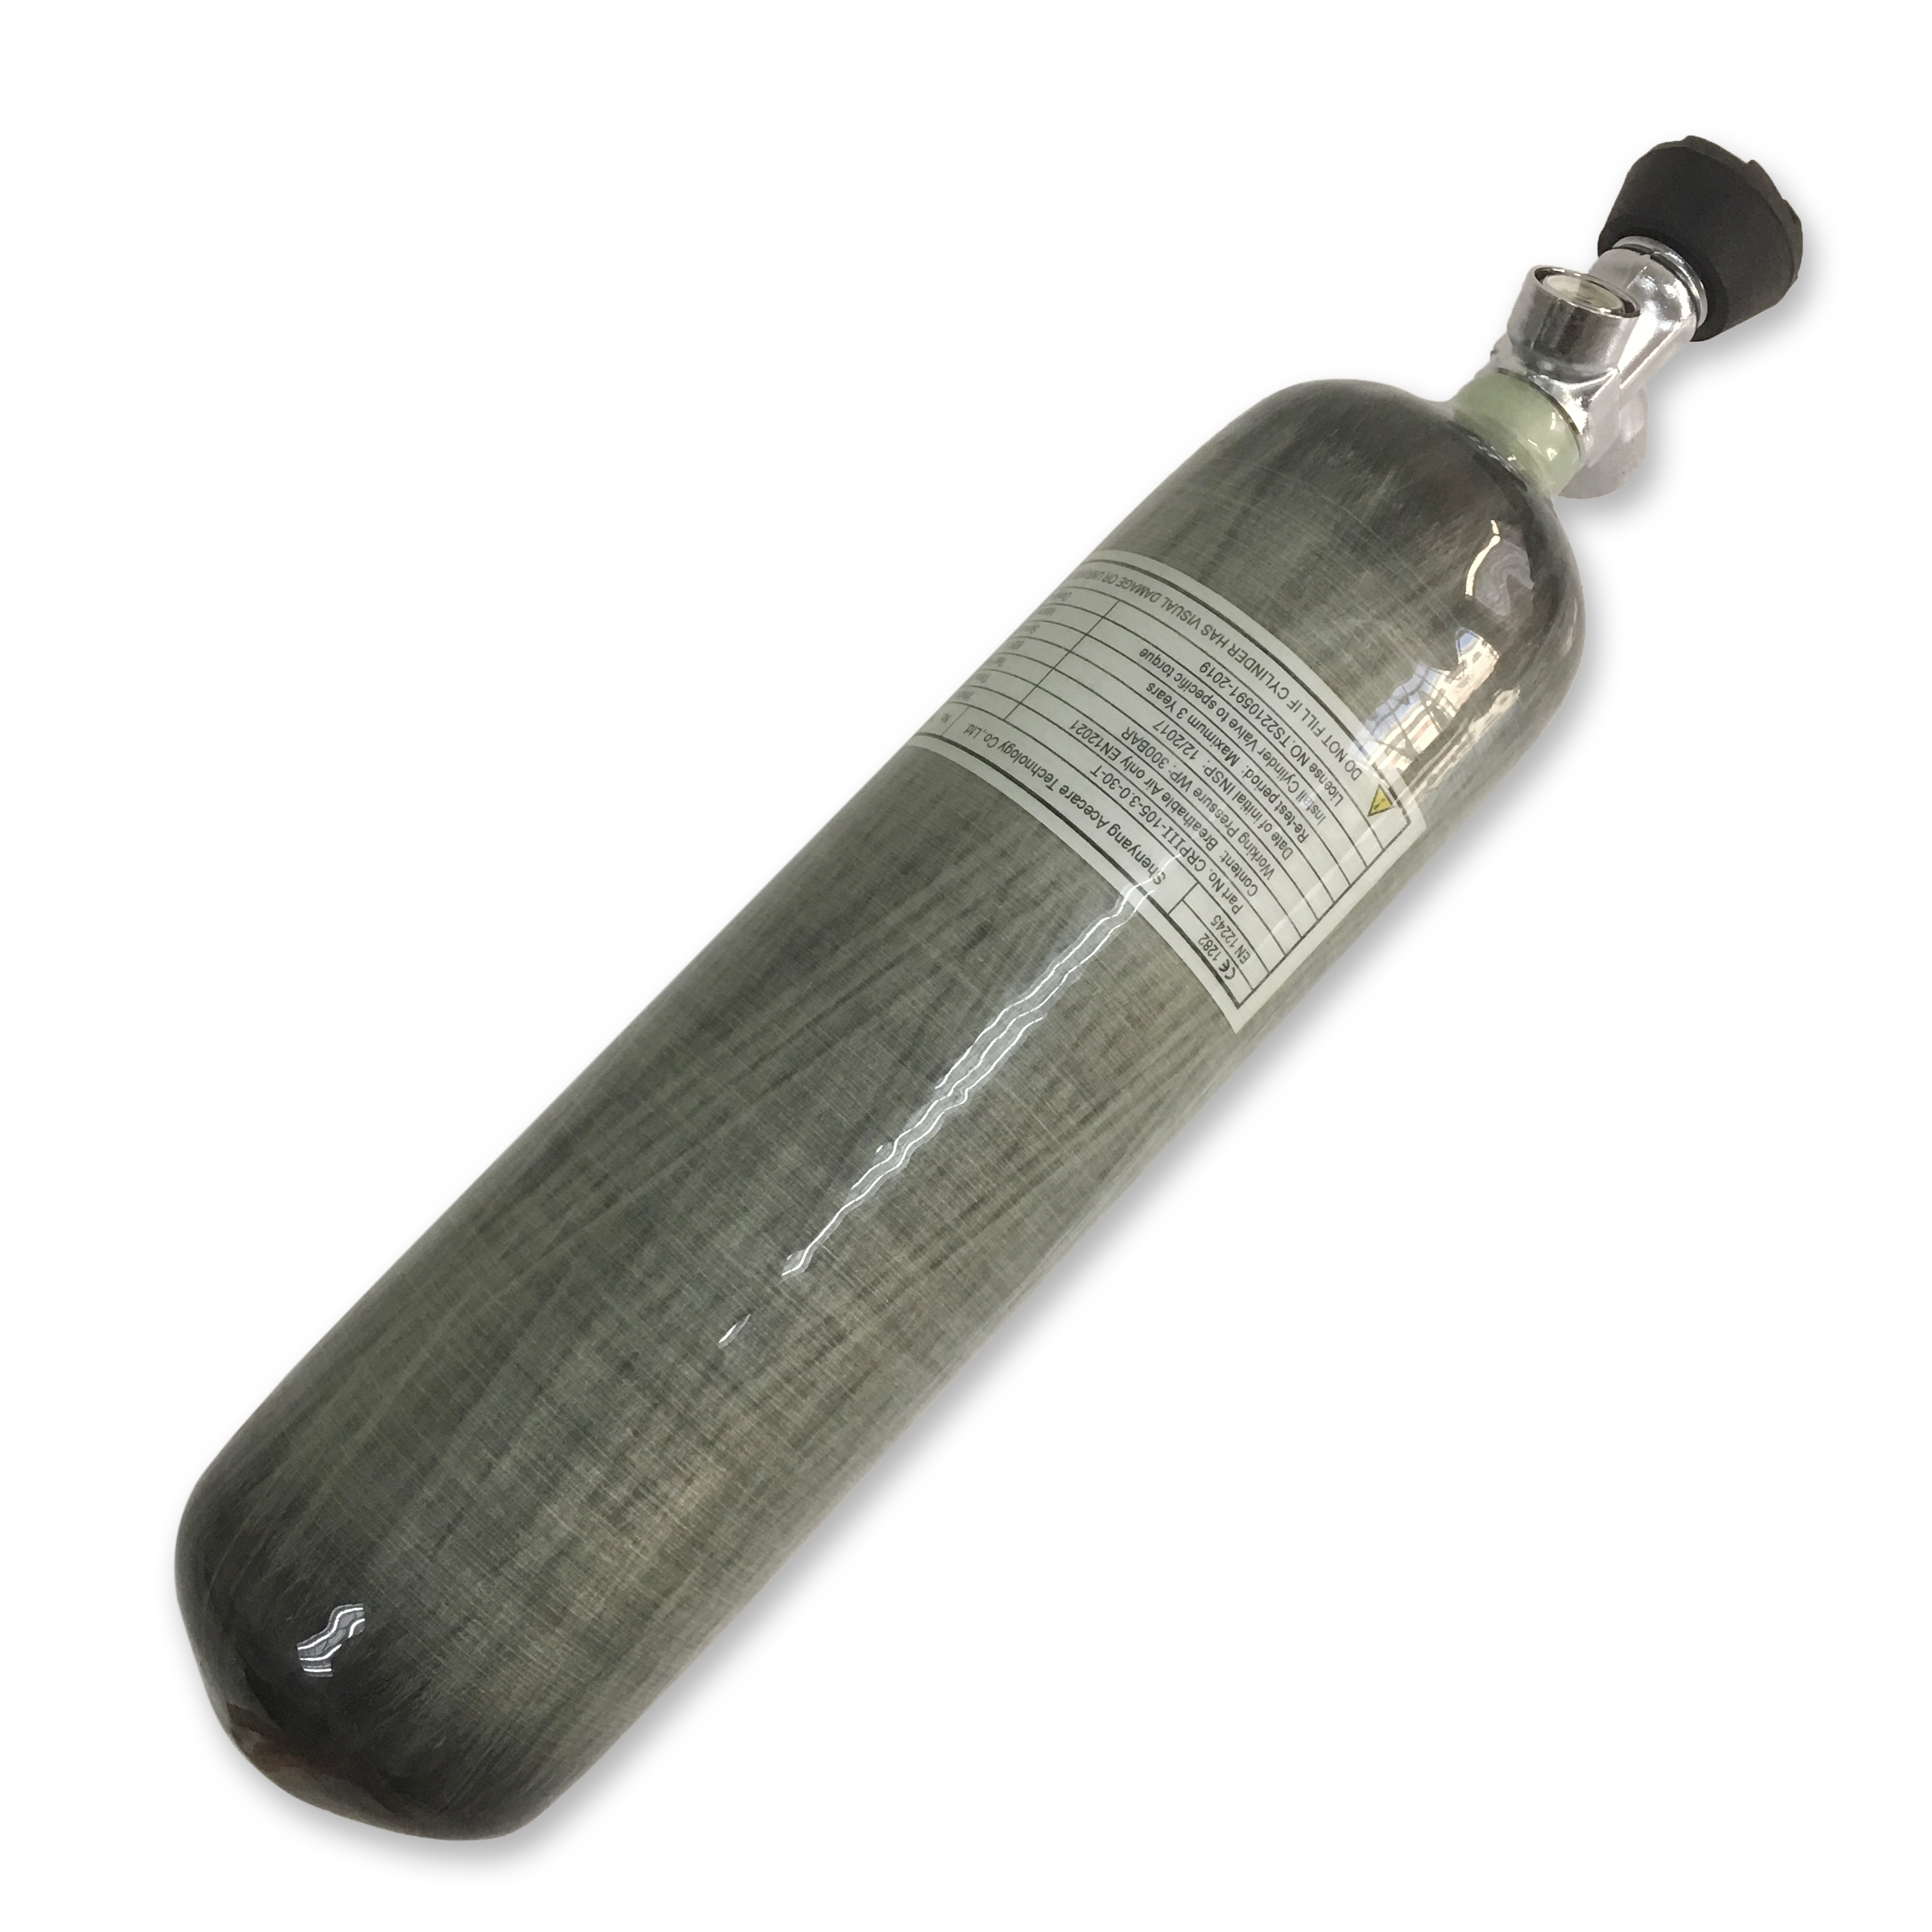 AC10331 Airsoft Cylinder Paintball Tank Hpa Co2 Cylinder Pcp 3L 300bar M18*1.5 Thread CE Paintball Equipment With Gauge Valve